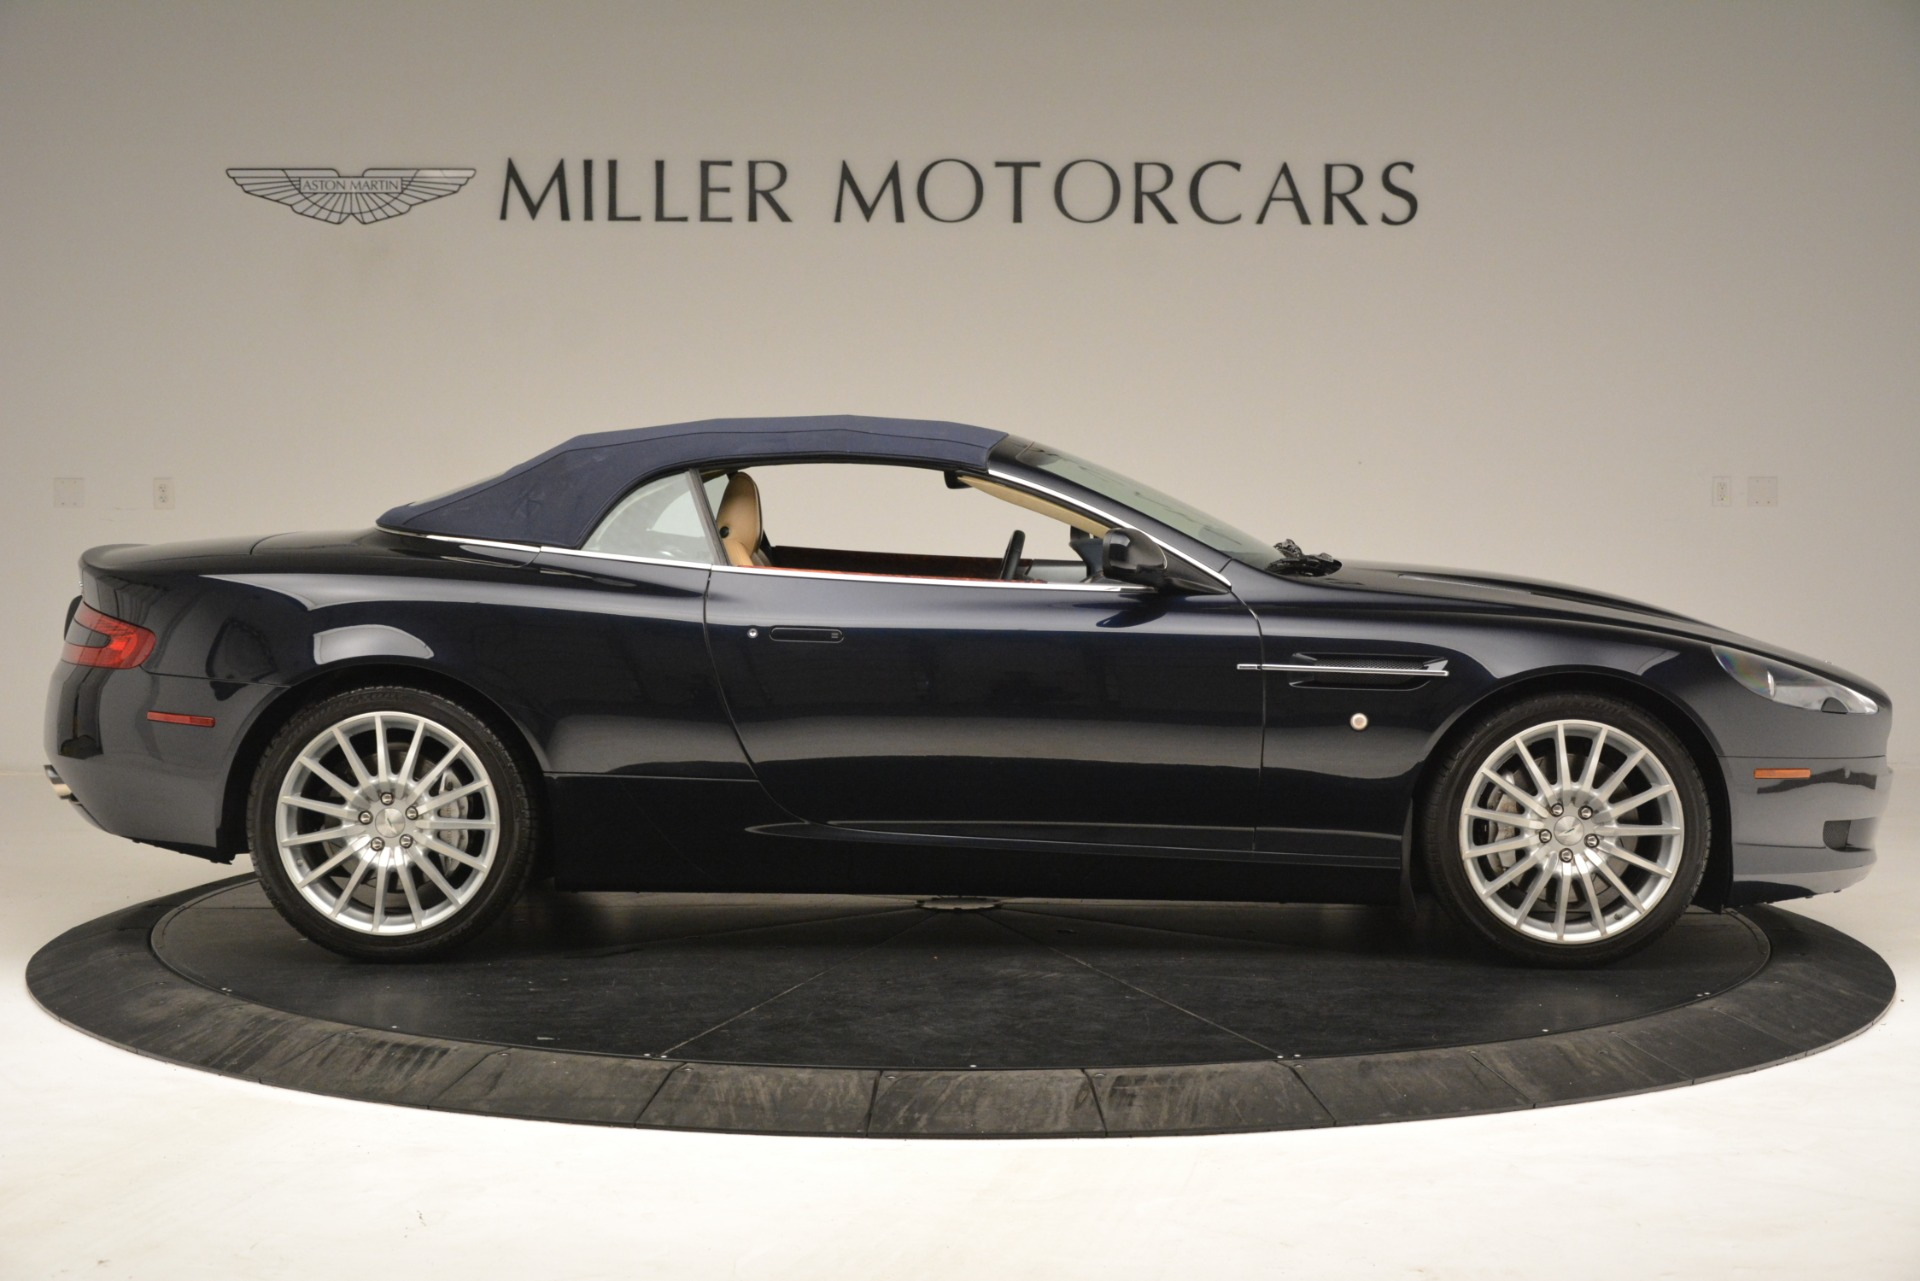 Used 2007 Aston Martin DB9 Convertible For Sale In Westport, CT 3291_p30